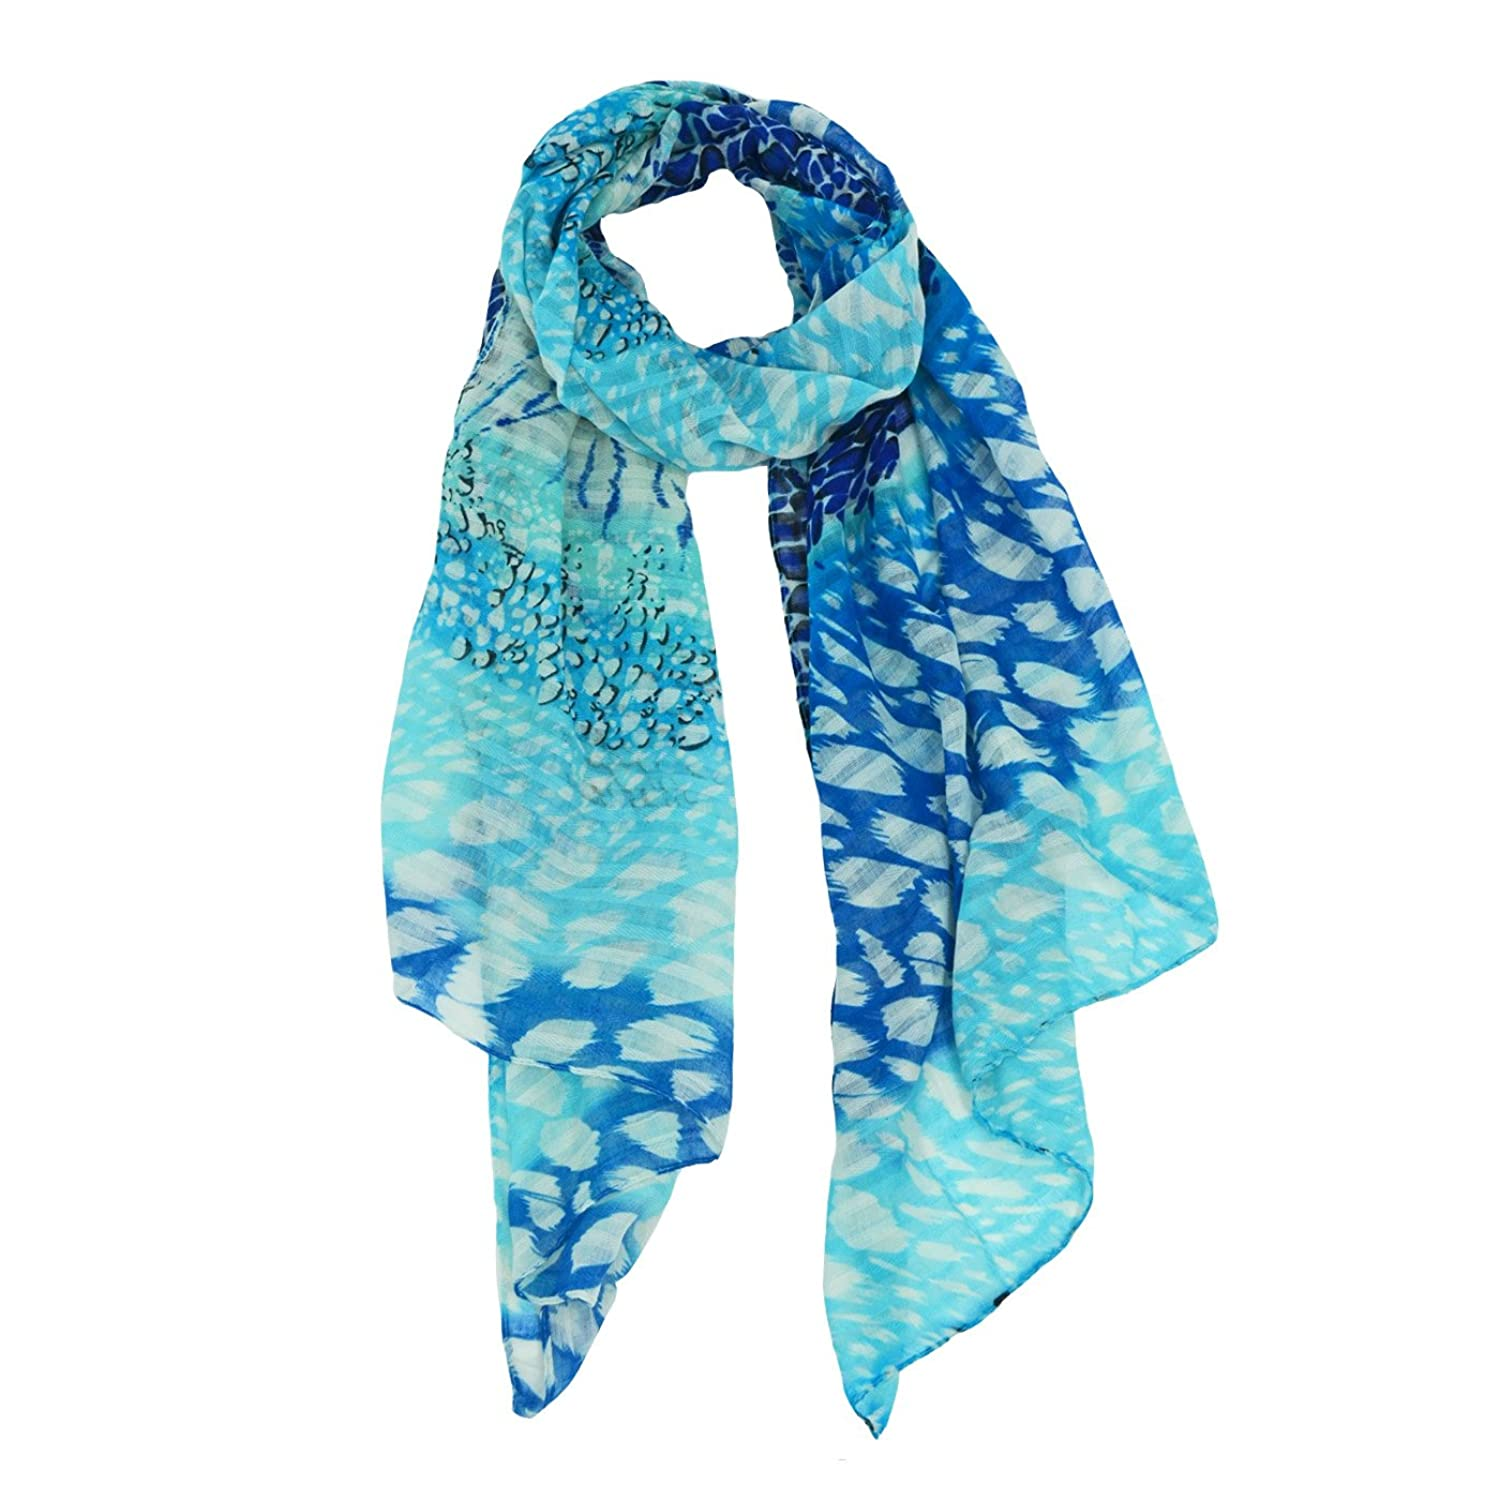 Sidney Abstract Animal Print Scarf